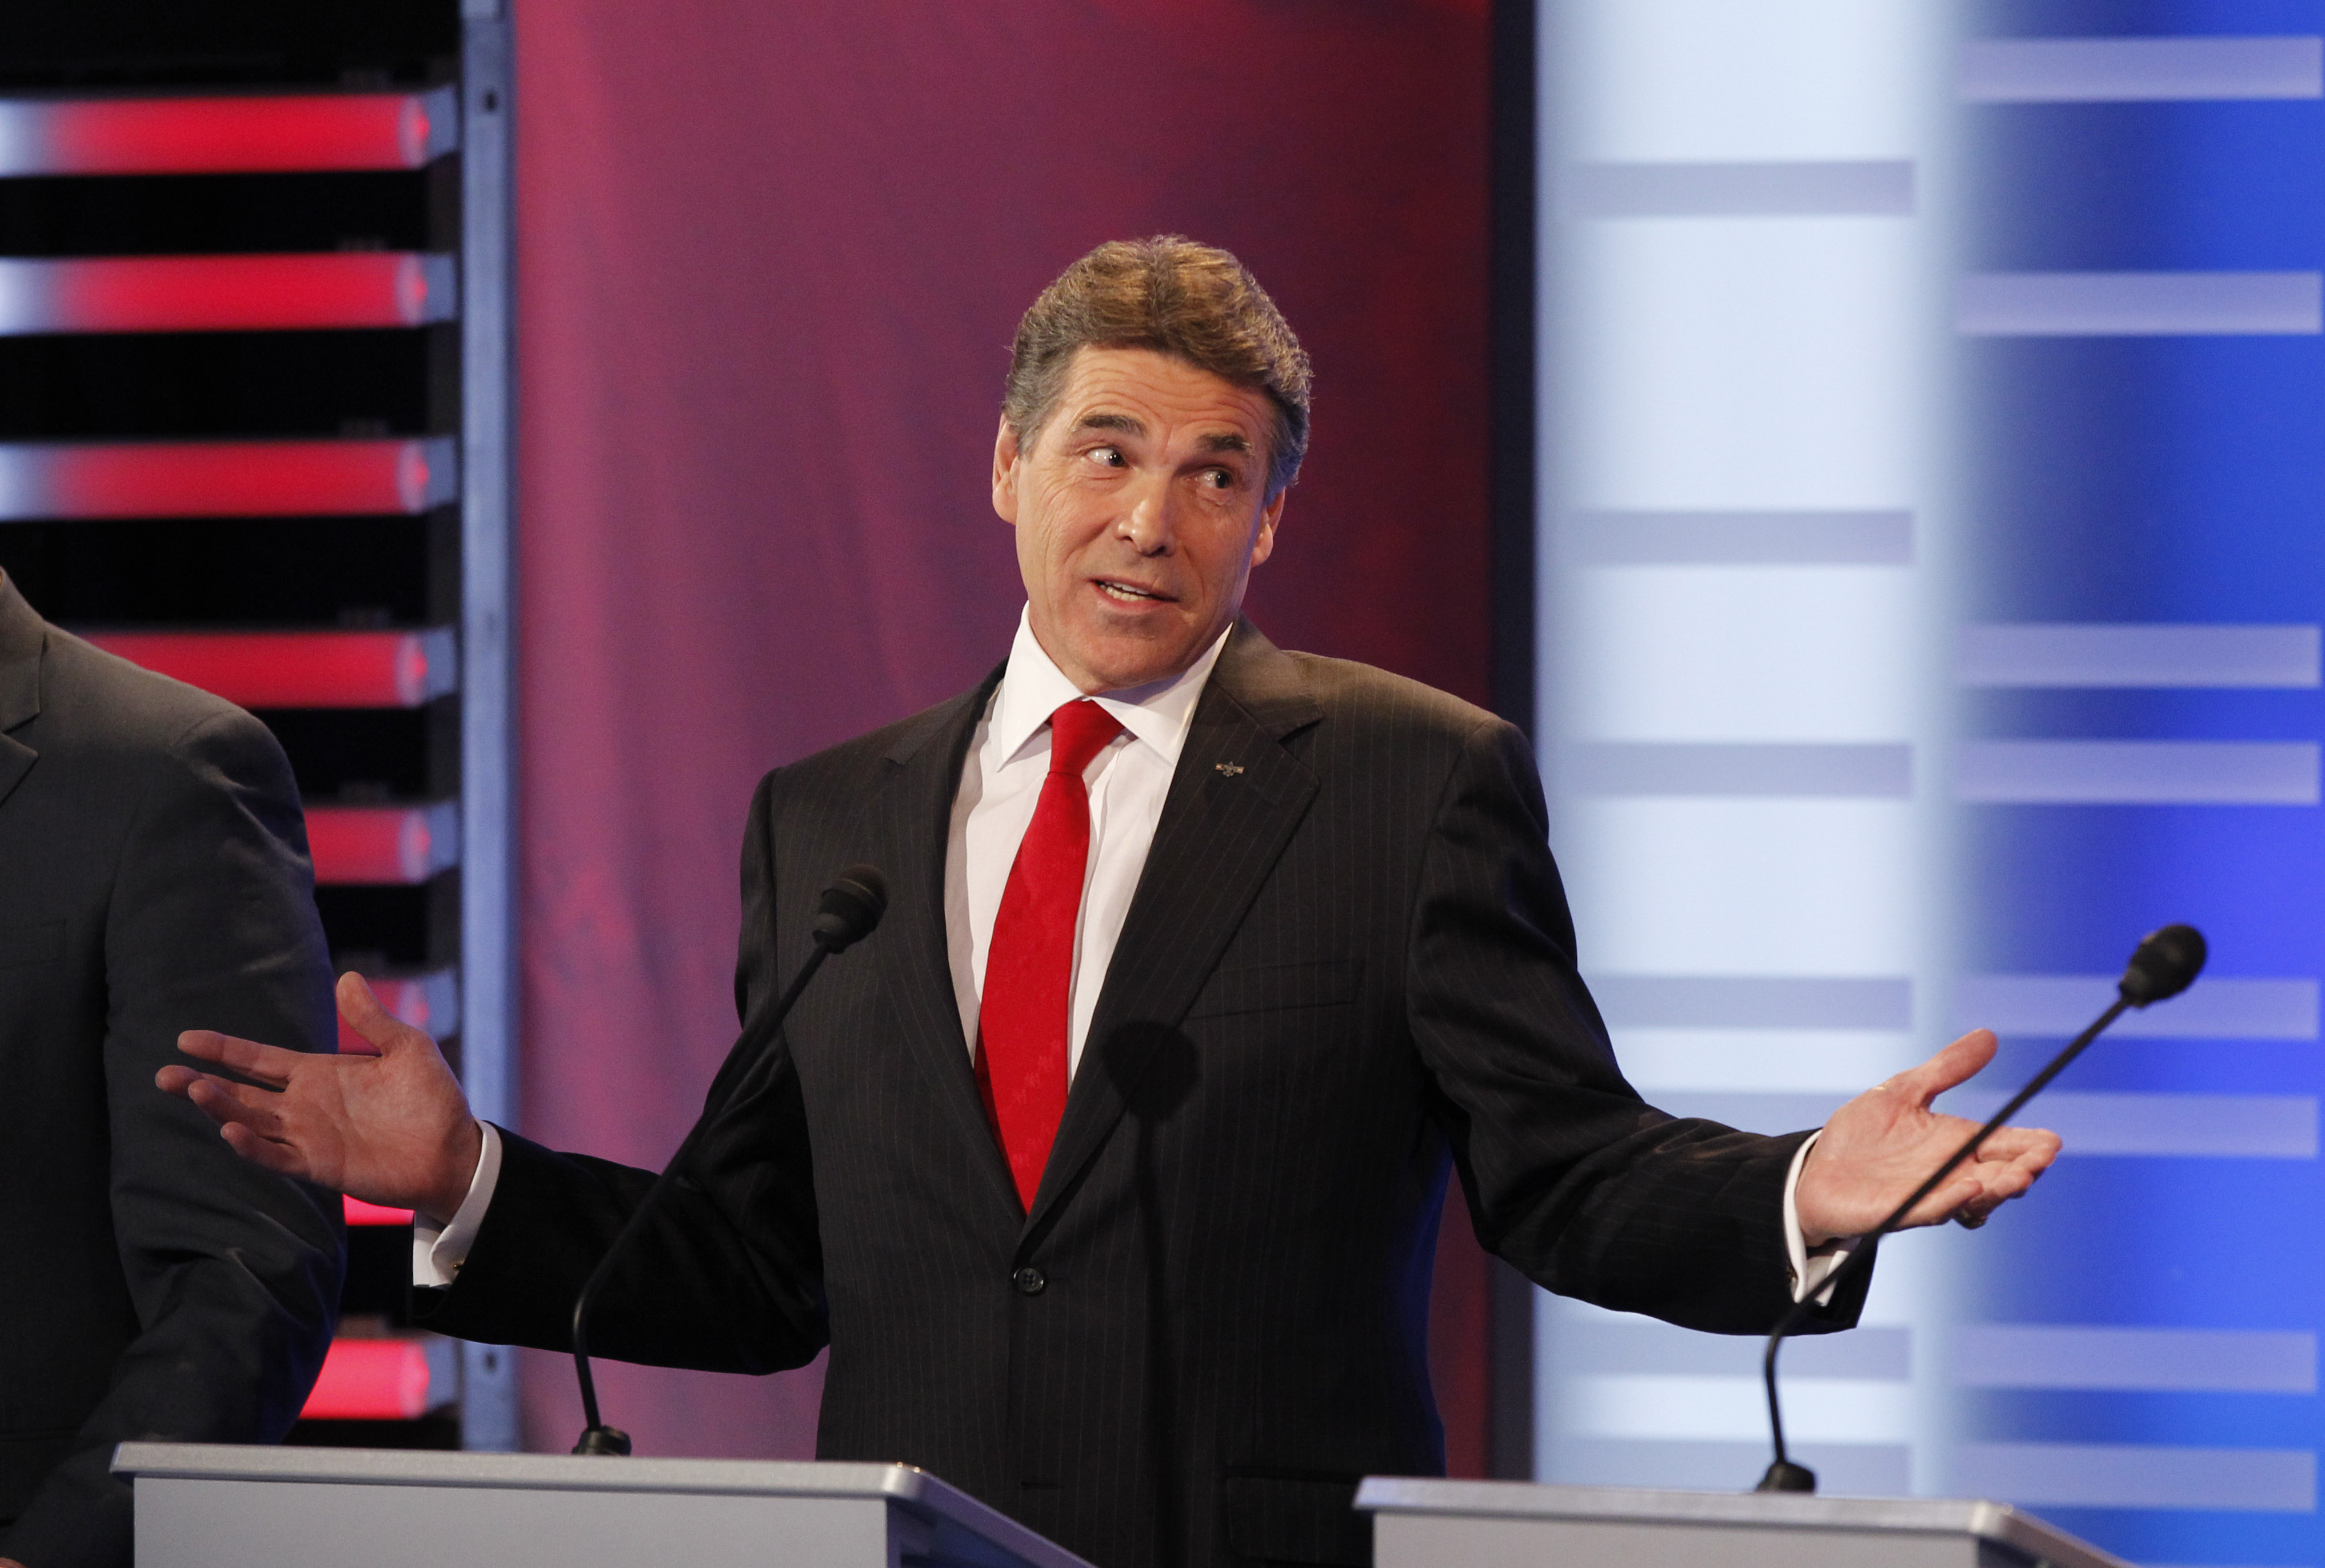 Rick Perry gestures with his hands at a podium